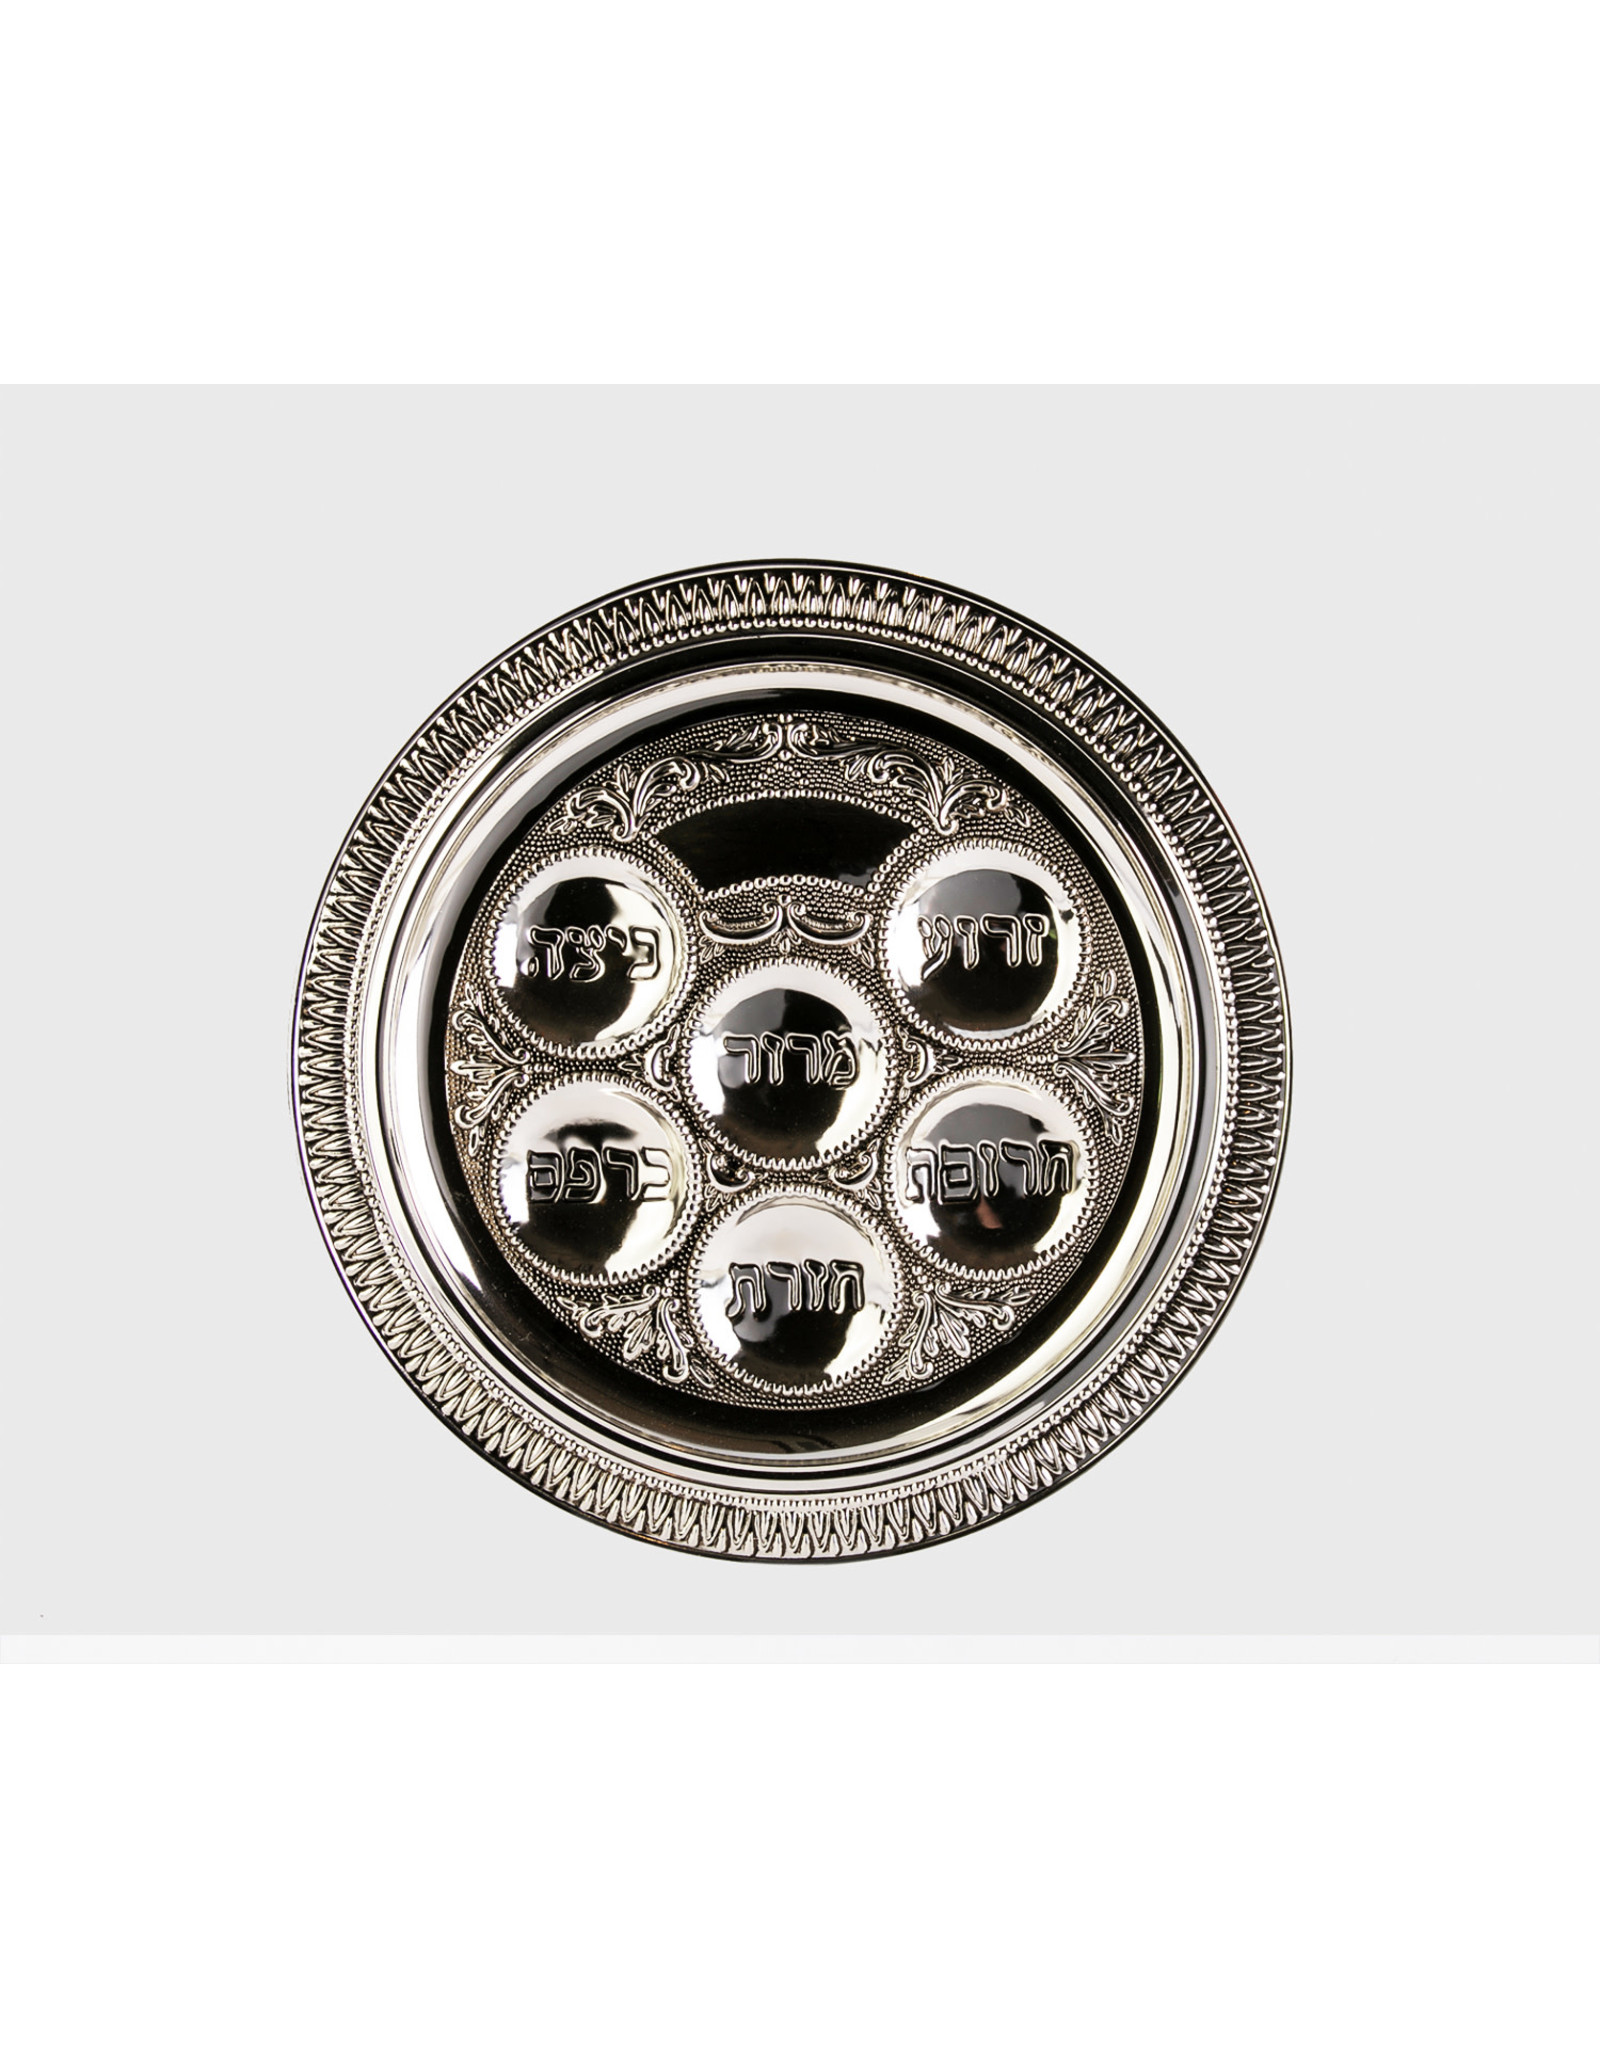 Seder Plate - Silver plated large